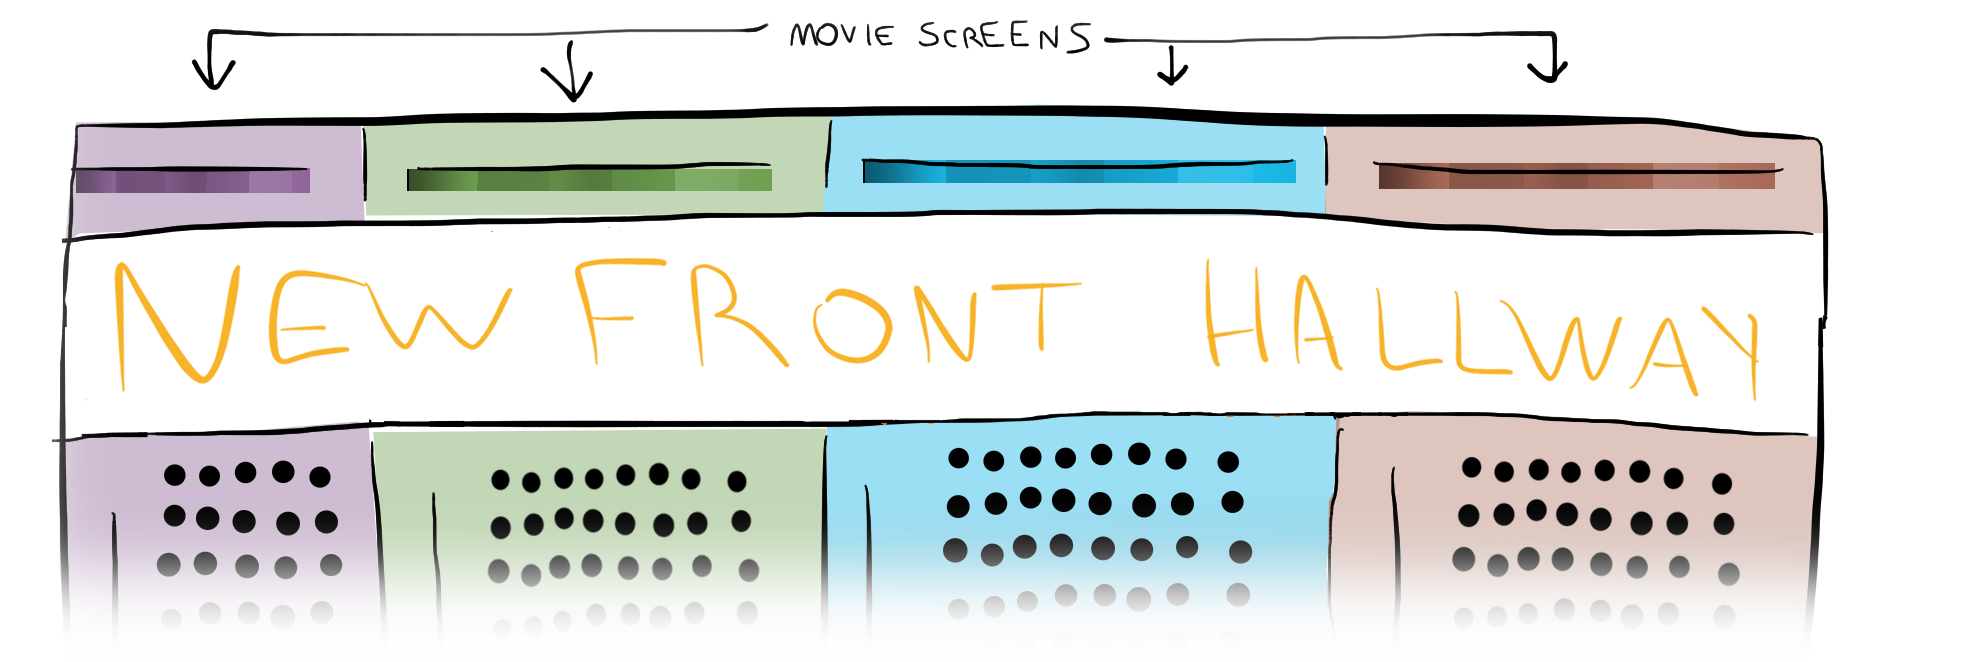 Theater Diagram PNG B.png